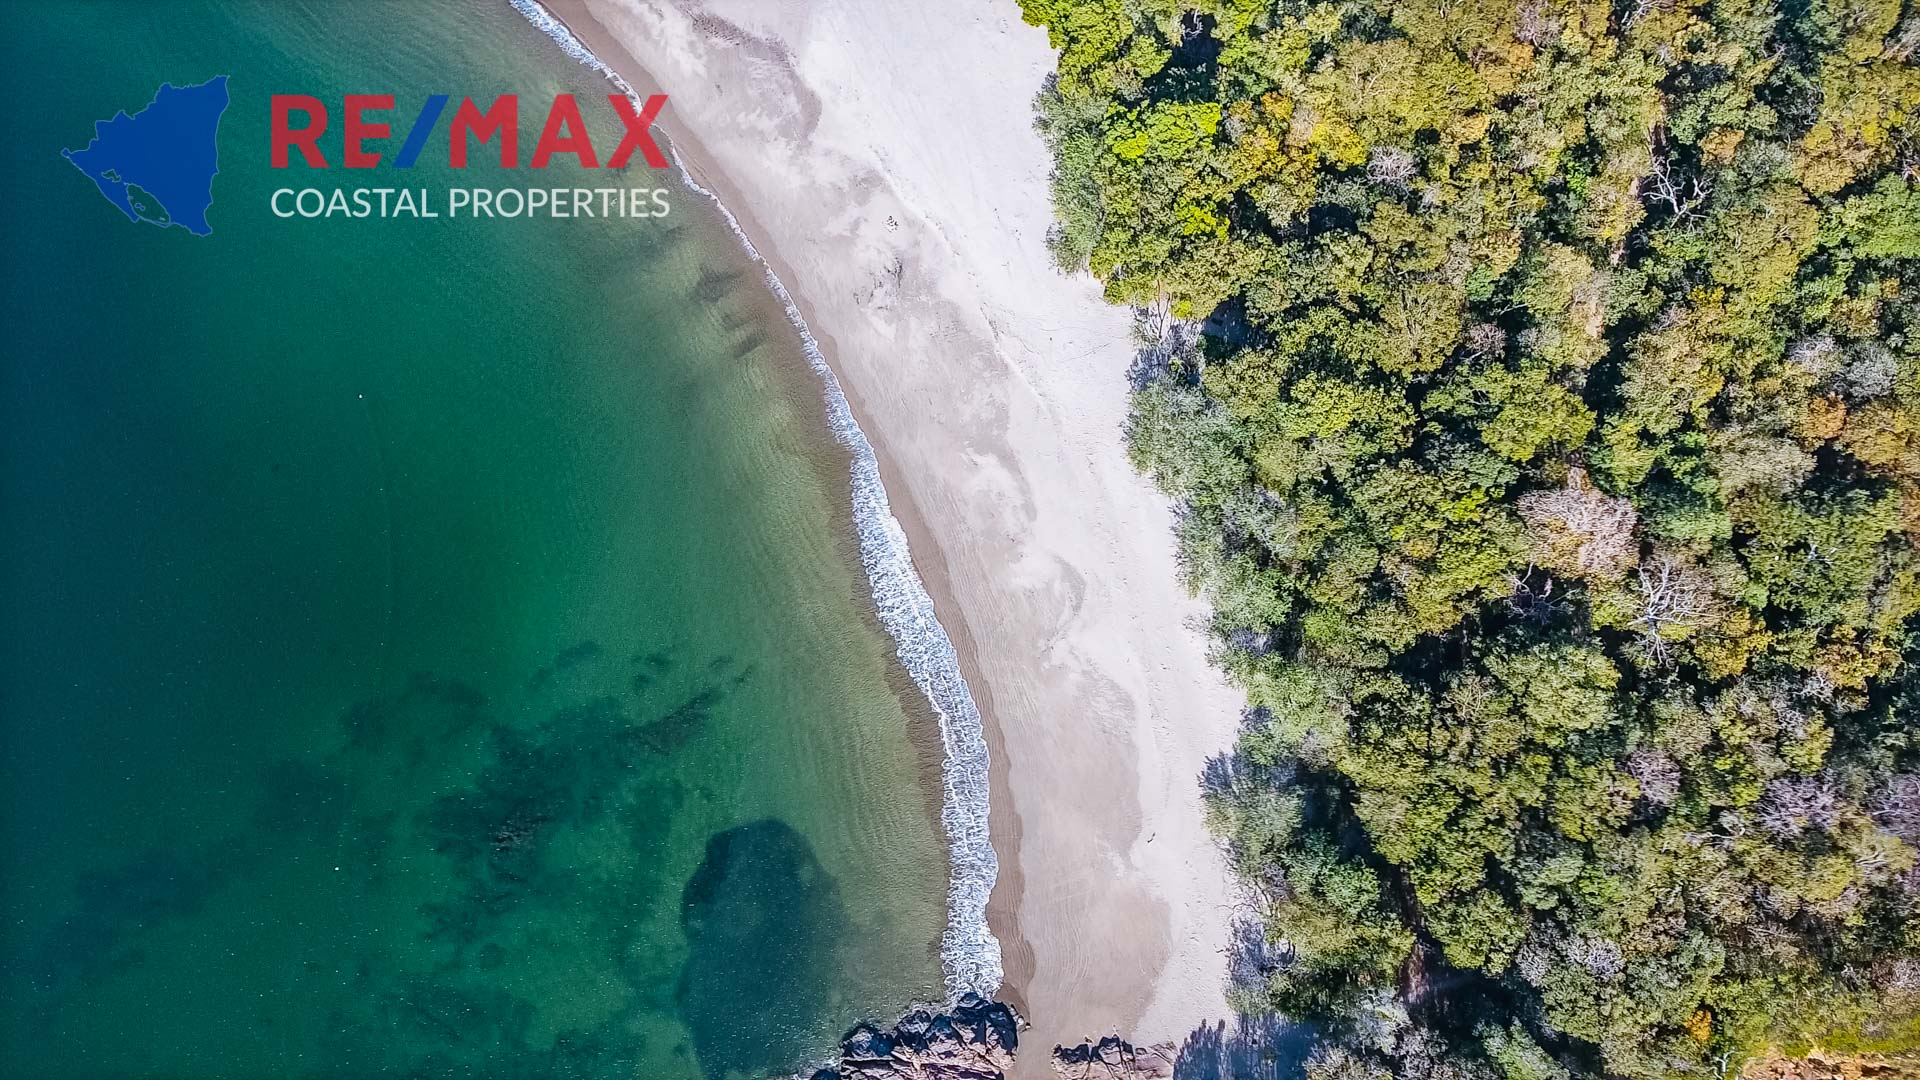 https://property-nicaragua.com/pedrodev/wp-content/uploads/2020/07/Arcadia-Gigante-Redonda-Development-Opportunity-REMAX-Coastal-Properties-5.jpg